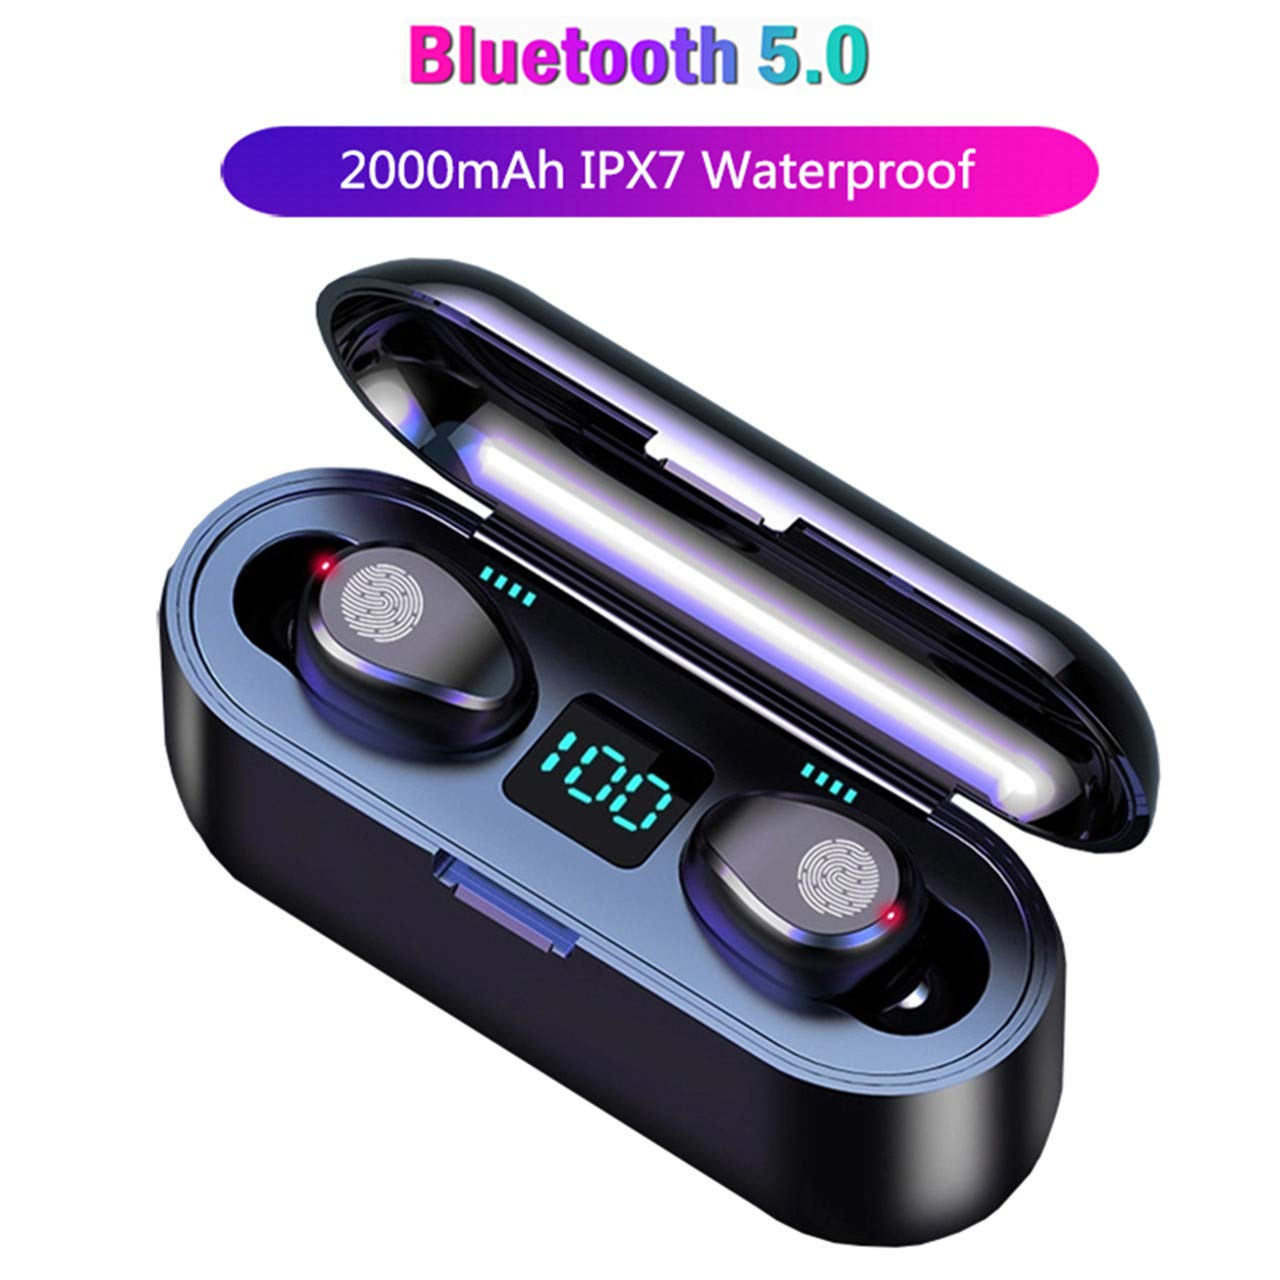 2019 Newly True Bluetooth 5.0 Earbuds with 2000mAh Charging Case LED Battery Display 60H Playtime in-Ear Touch Bluetooth Headset IPX7 Waterproof True Wireless Earbuds for Work Sports